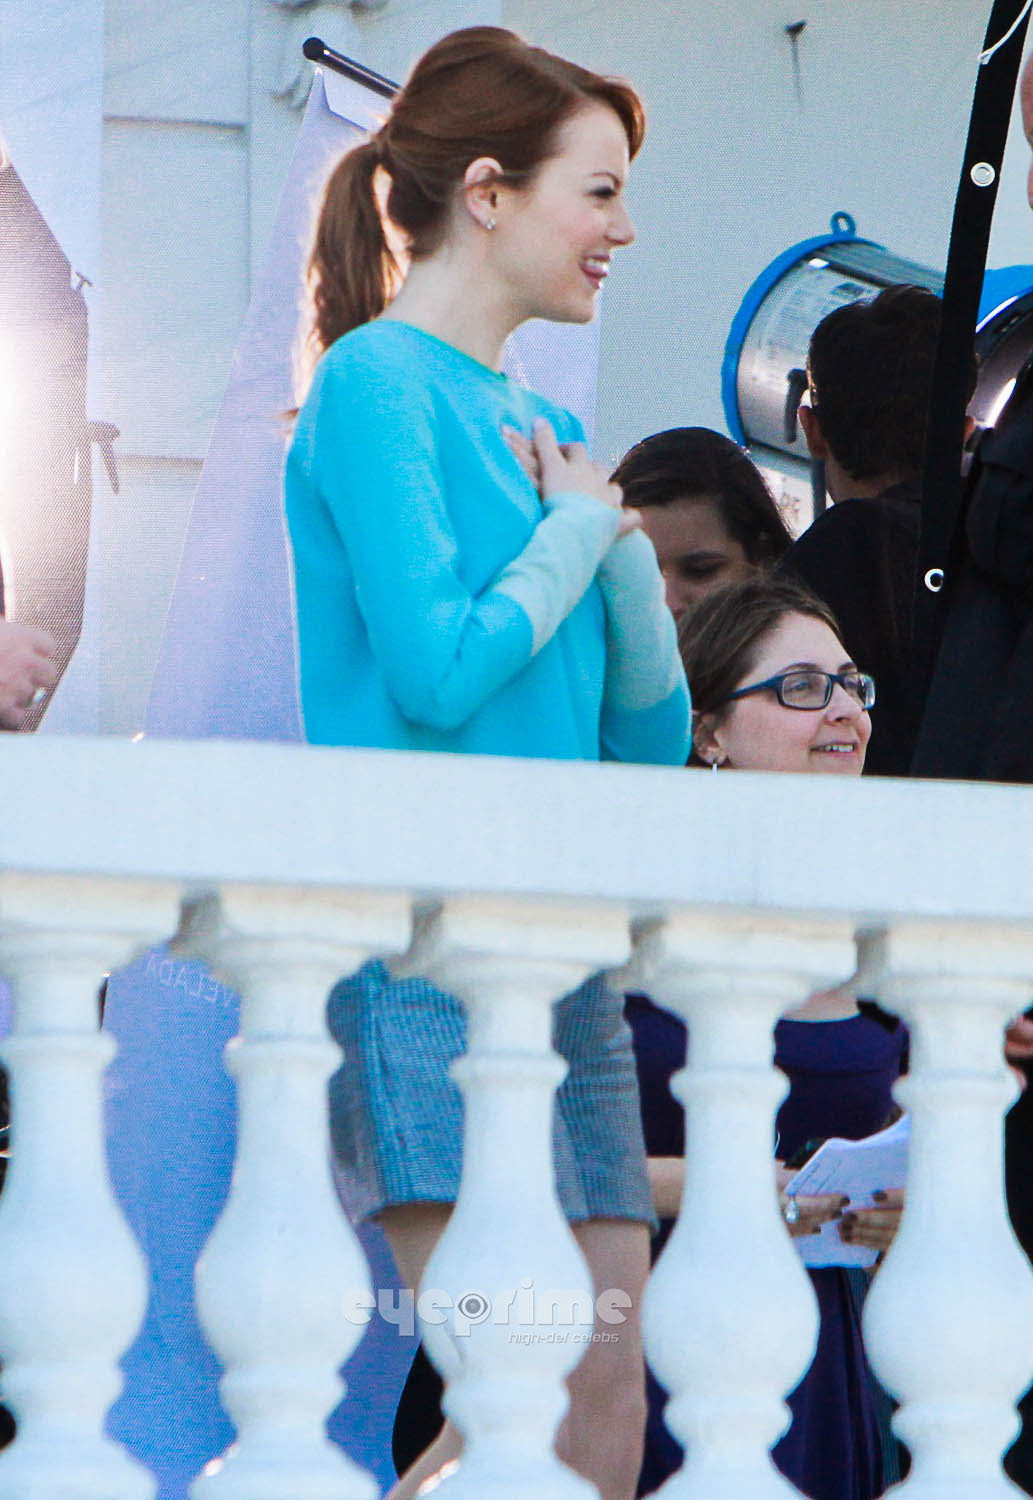 Emma Stone seen during a Photoshoot in Rio, Feb 5